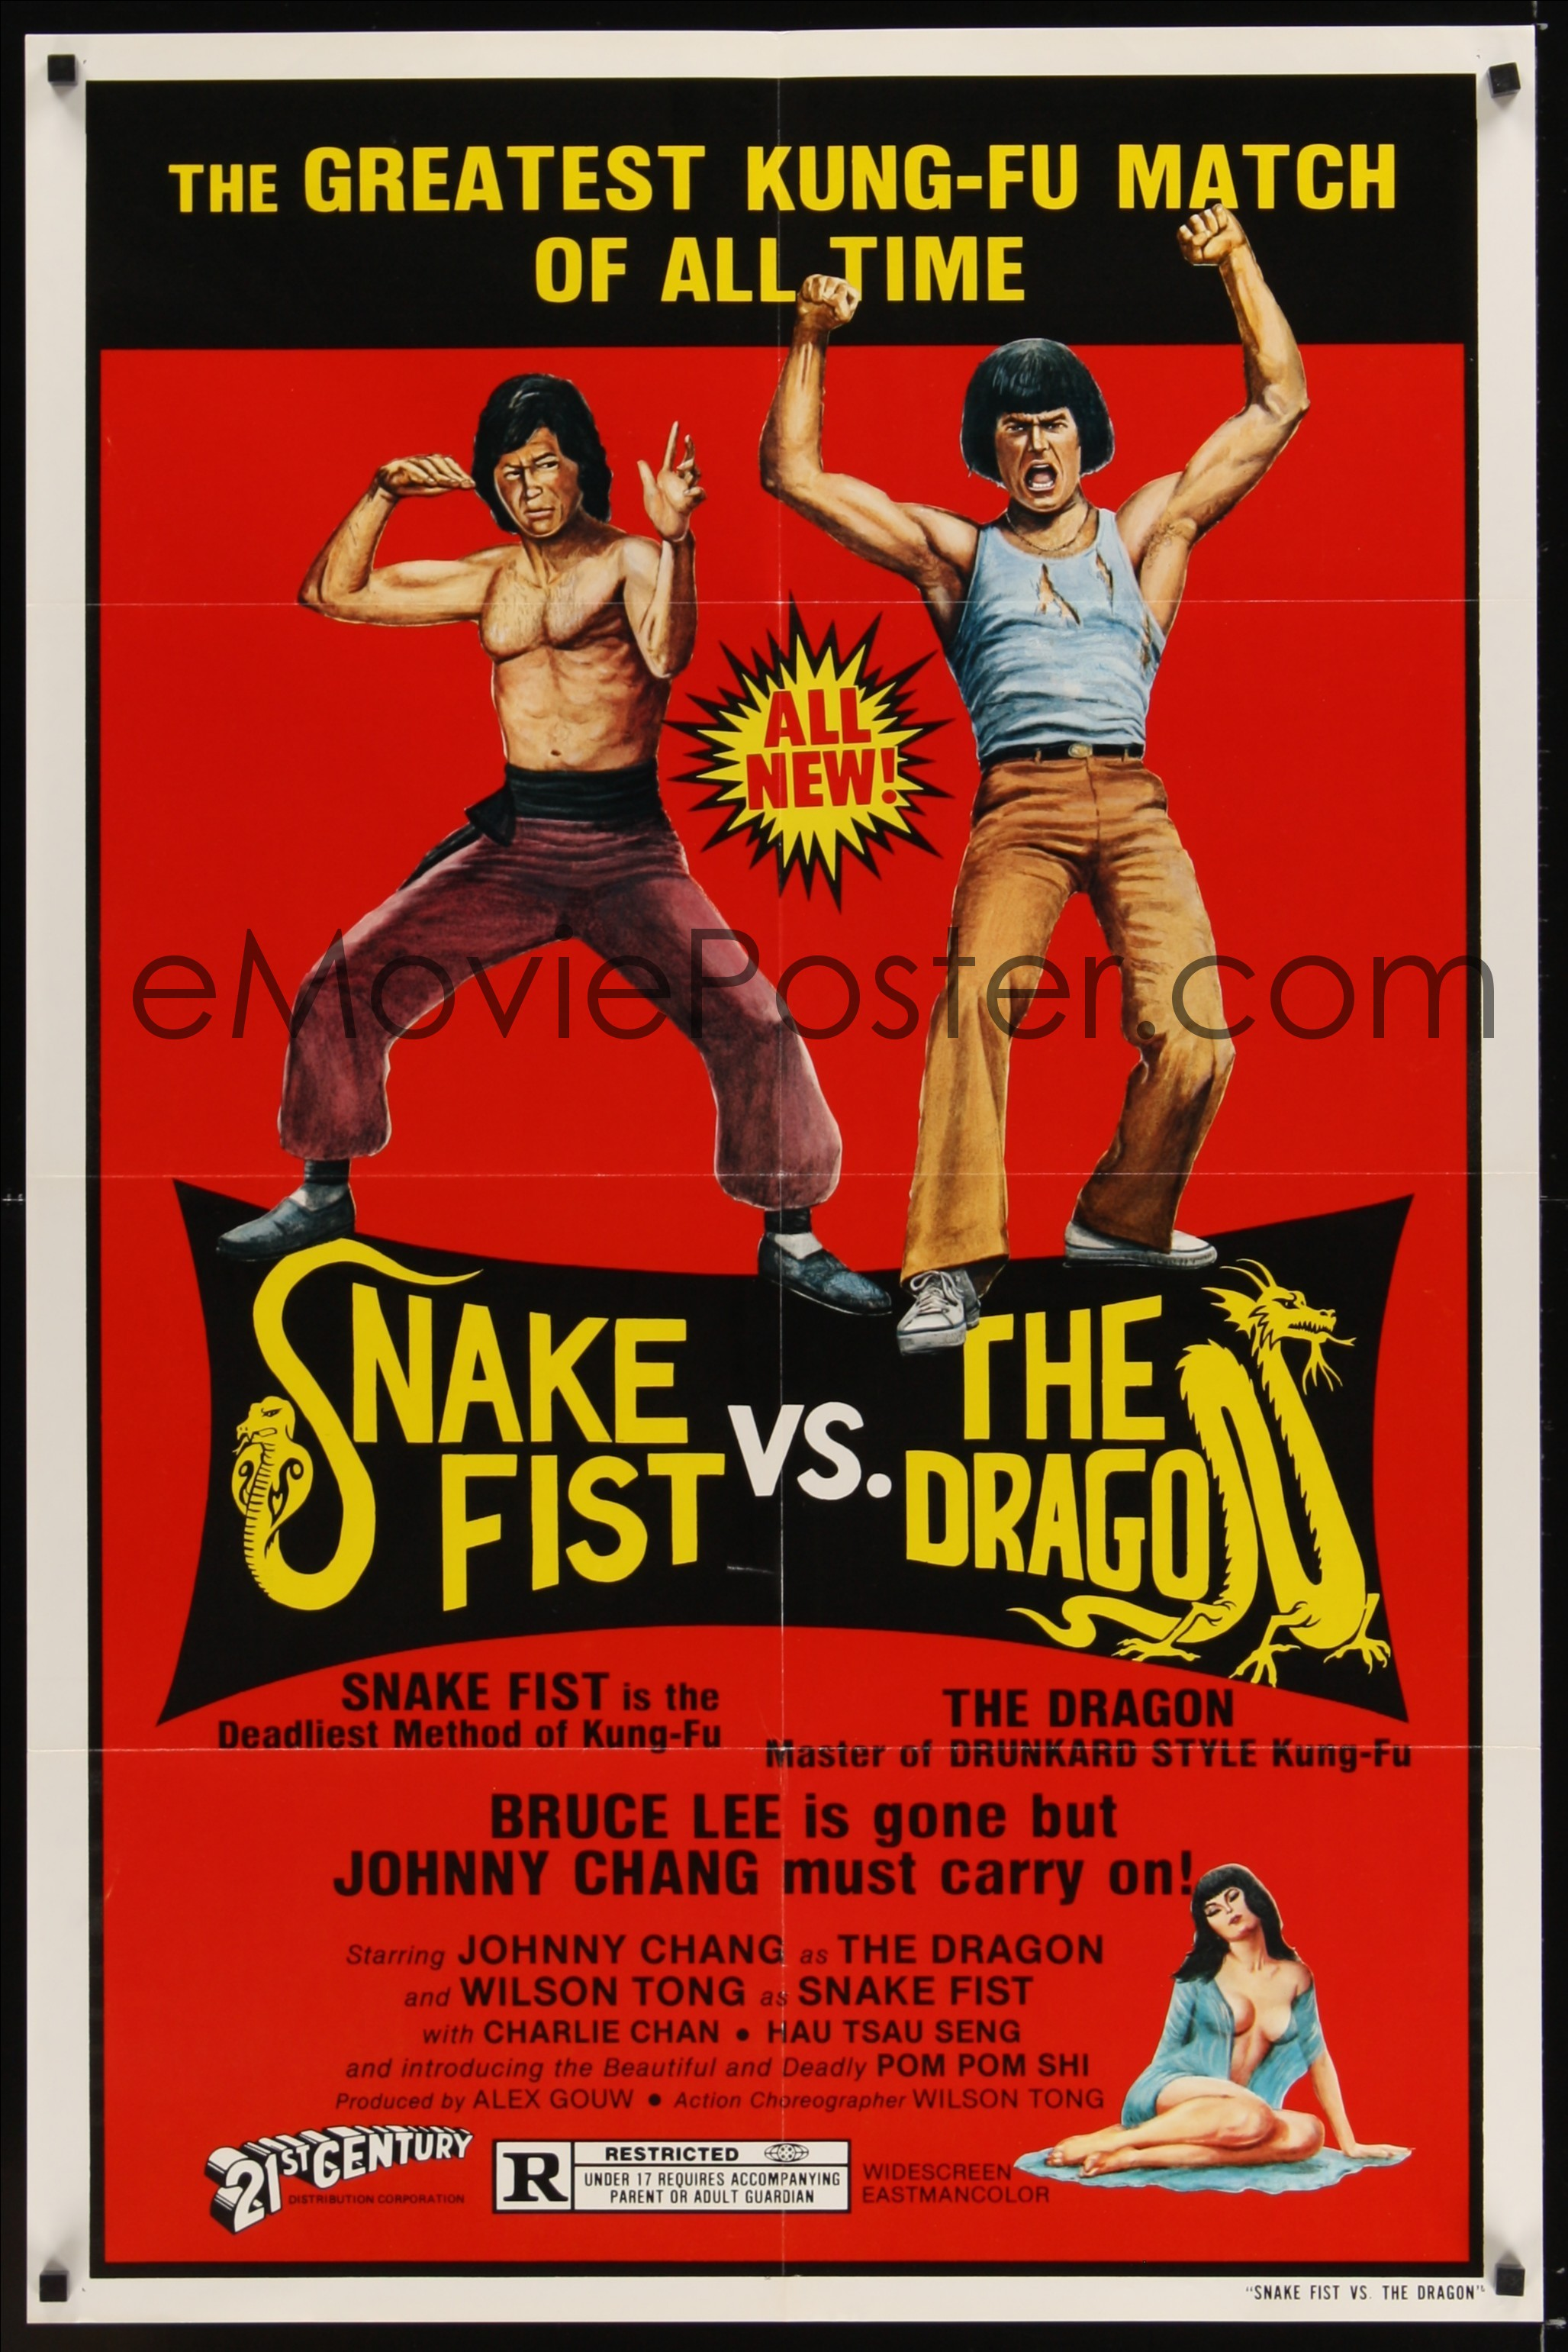 Snake fist vs the dragon